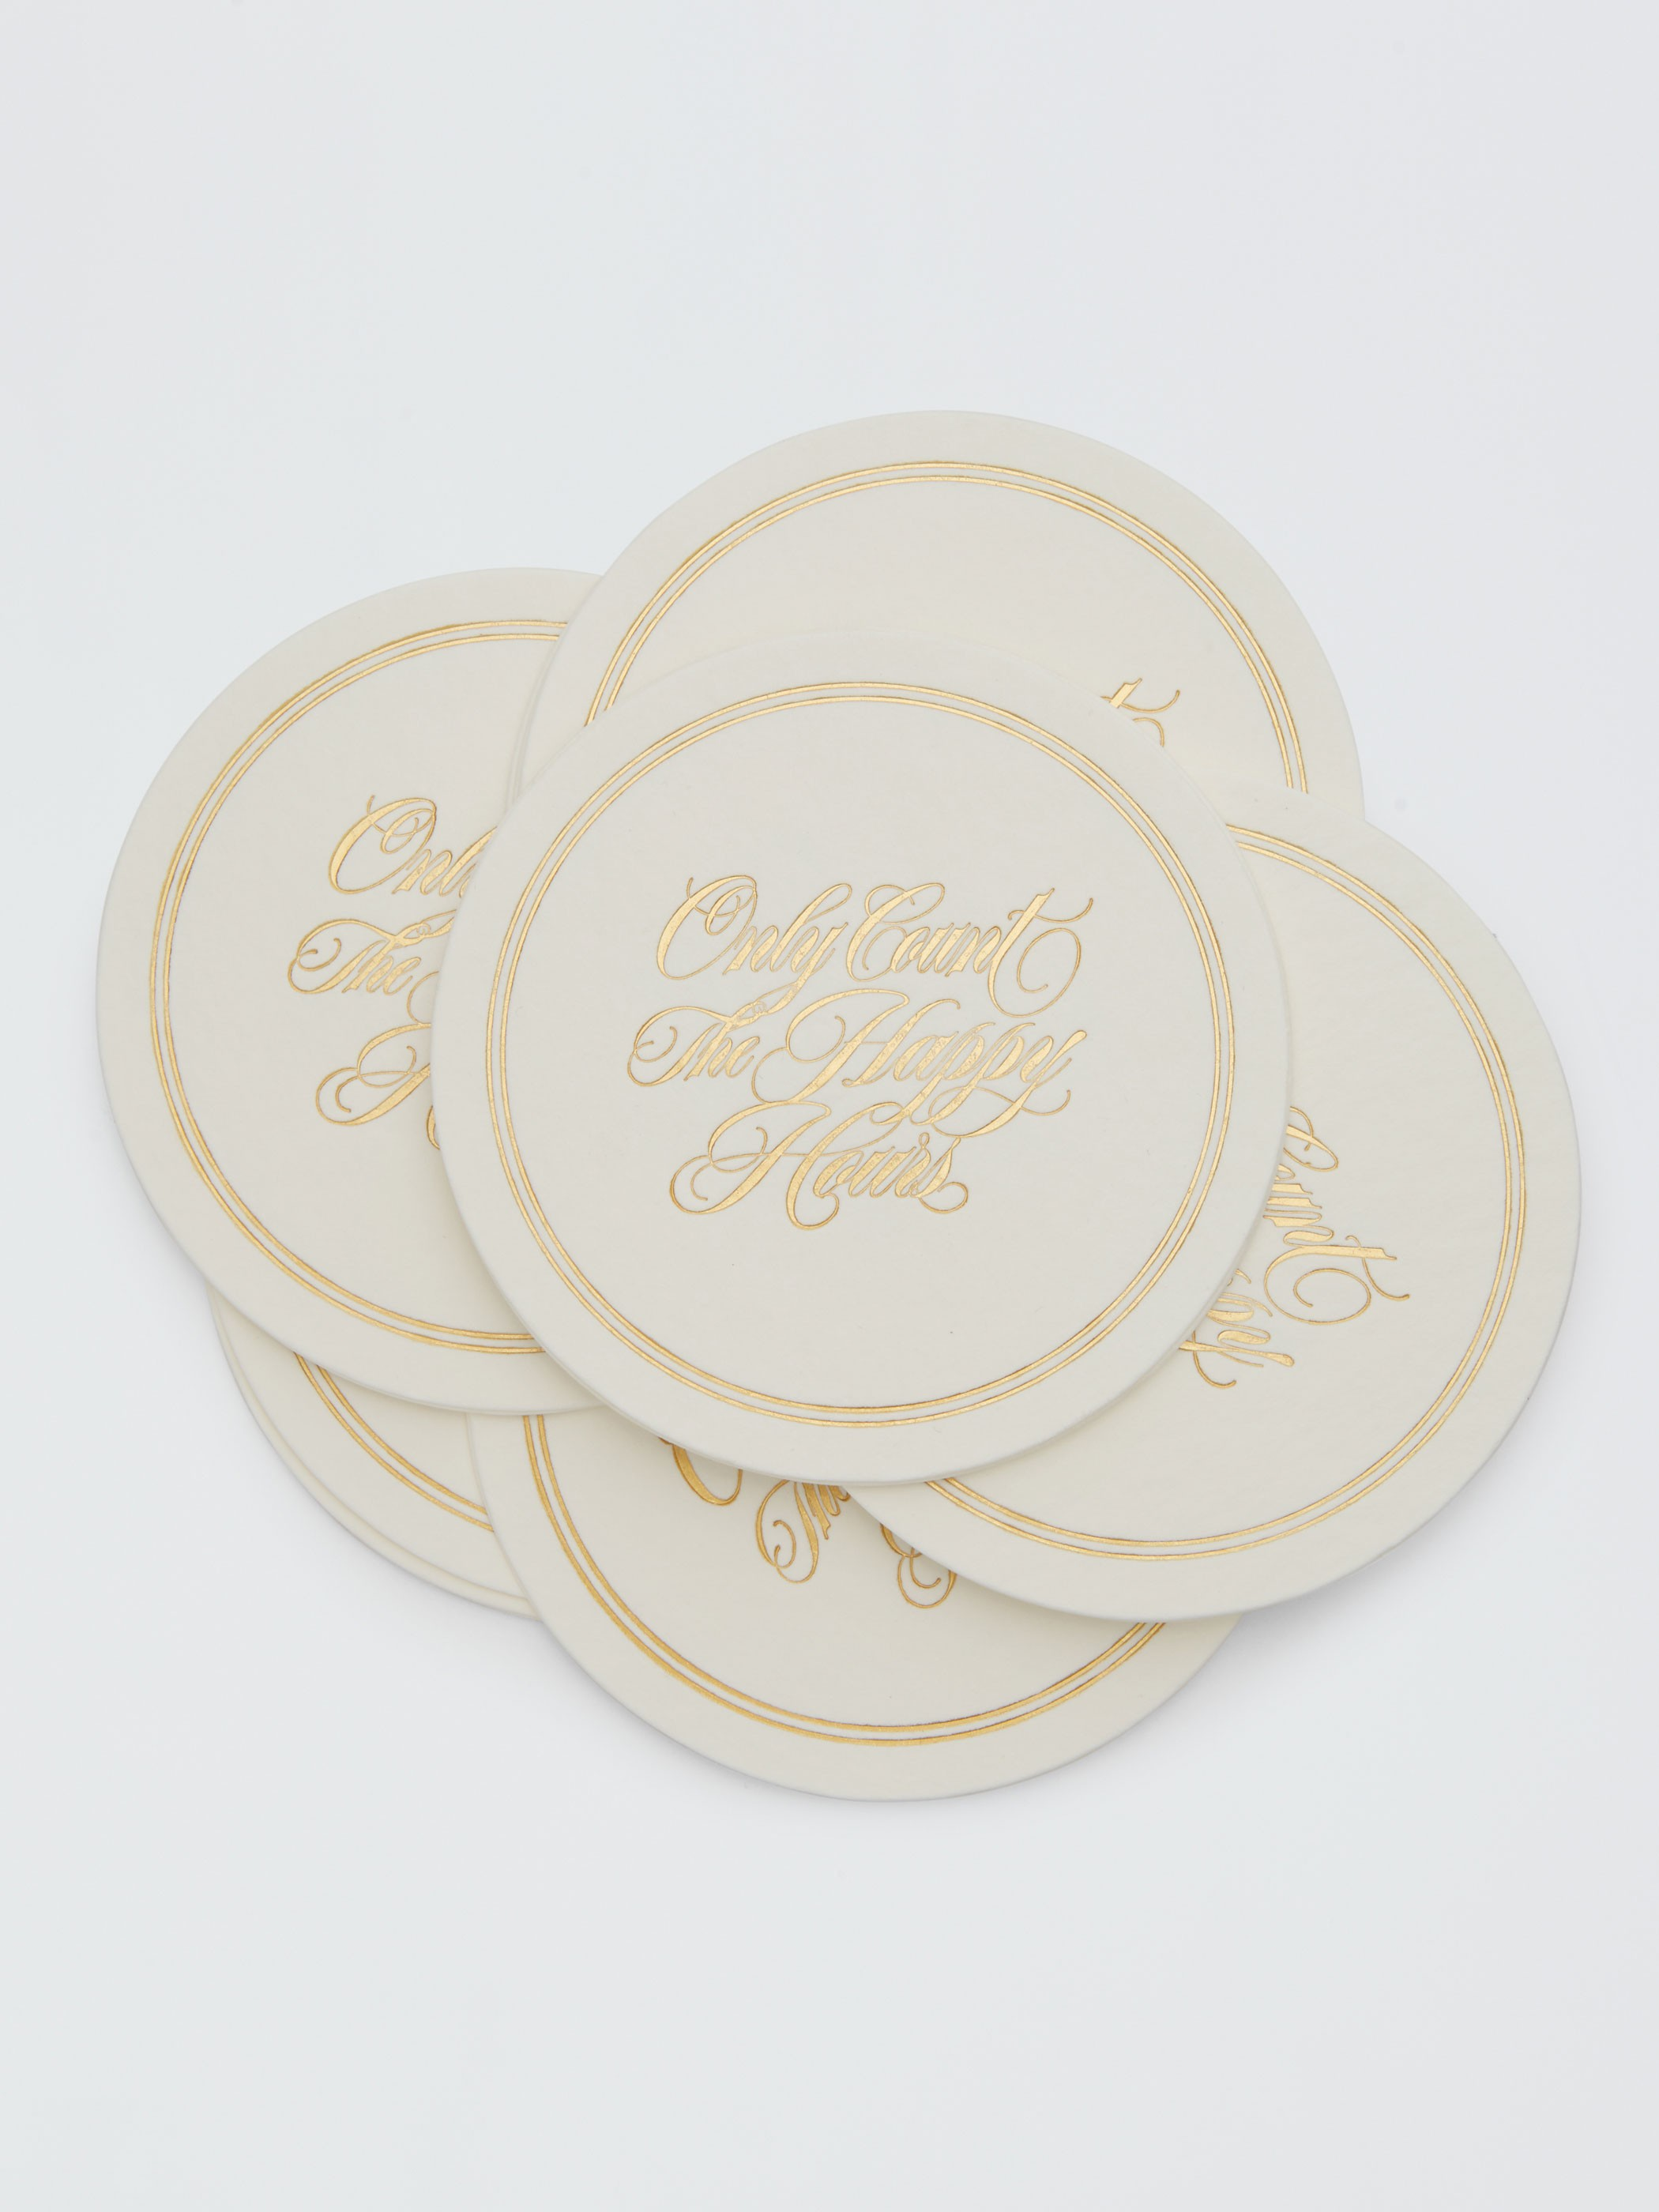 "Charming ""Only Count the Happy Hours""  Set of 12 paper coasters . Designed by Kentucky-based graphic designer Hanna Seabrook and produced in Raleigh, NC."